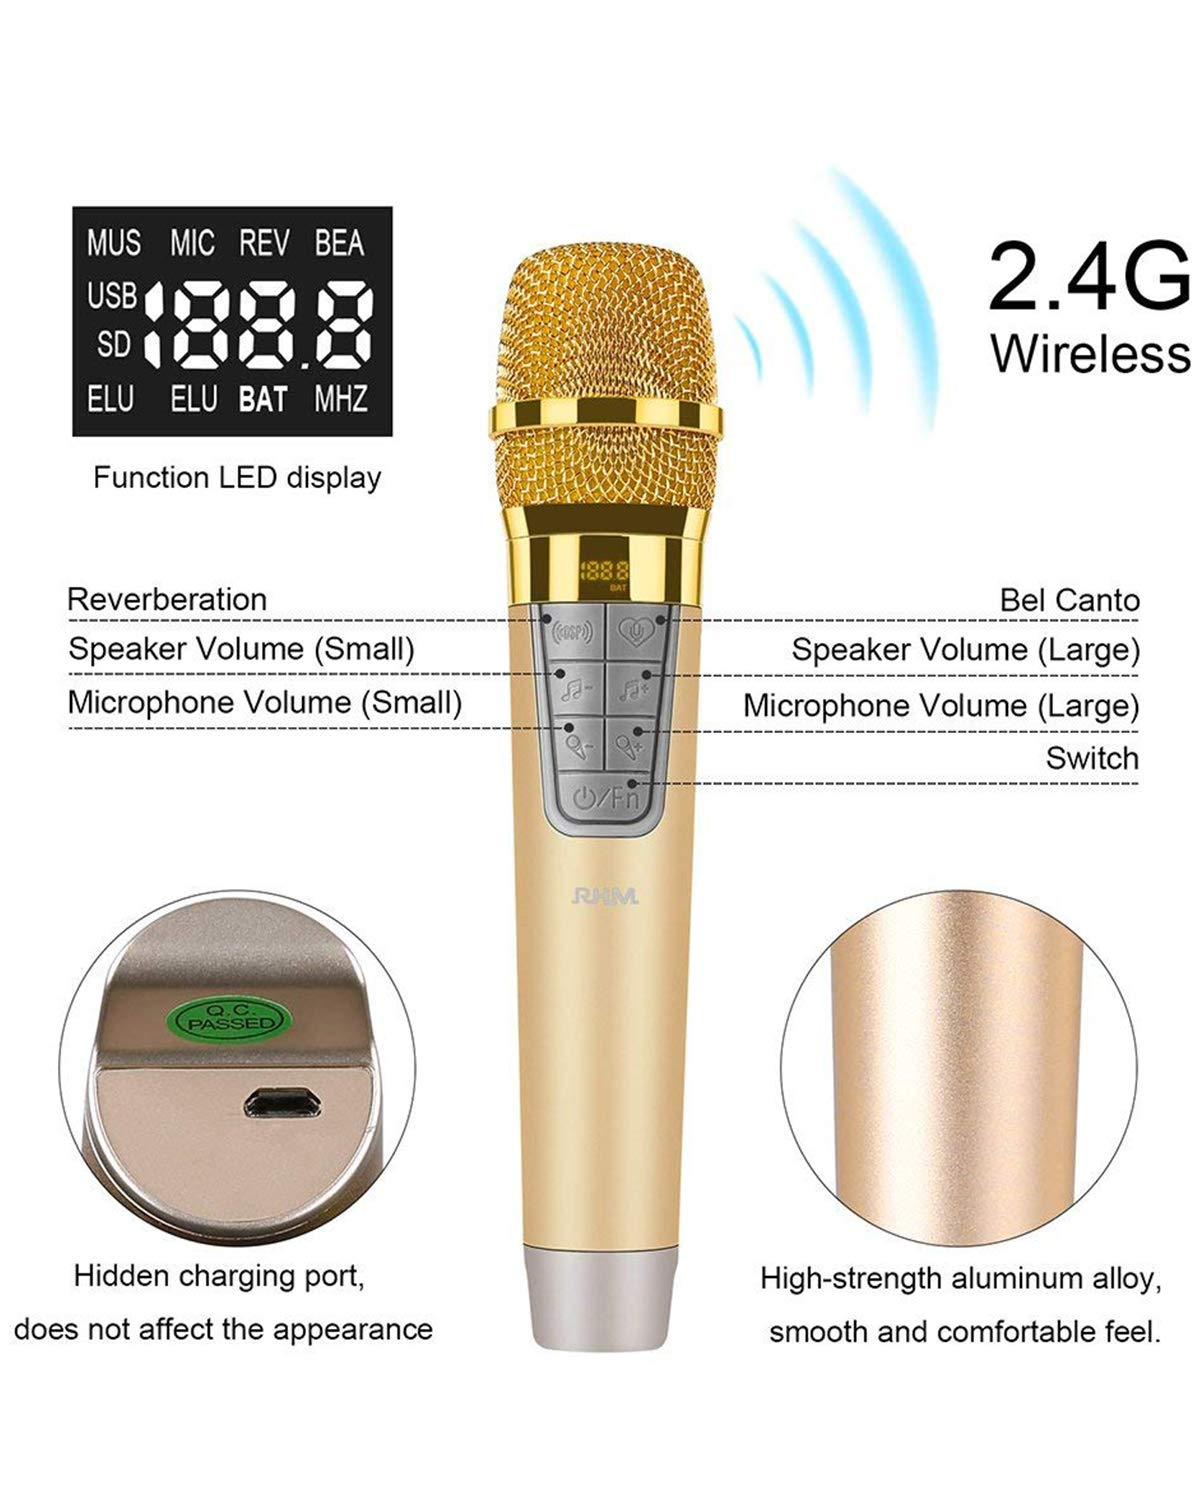 RHM Karaoke Machine for Kids&Adult,2 Wireless Microphones,Rechargeable Battery Speaker,Portable PA Speaker System with Bluetooth/AUX/USB/SD for Home,Party,Wedding,Picnic Outdoors&Indoors Activities by RHM (Image #4)